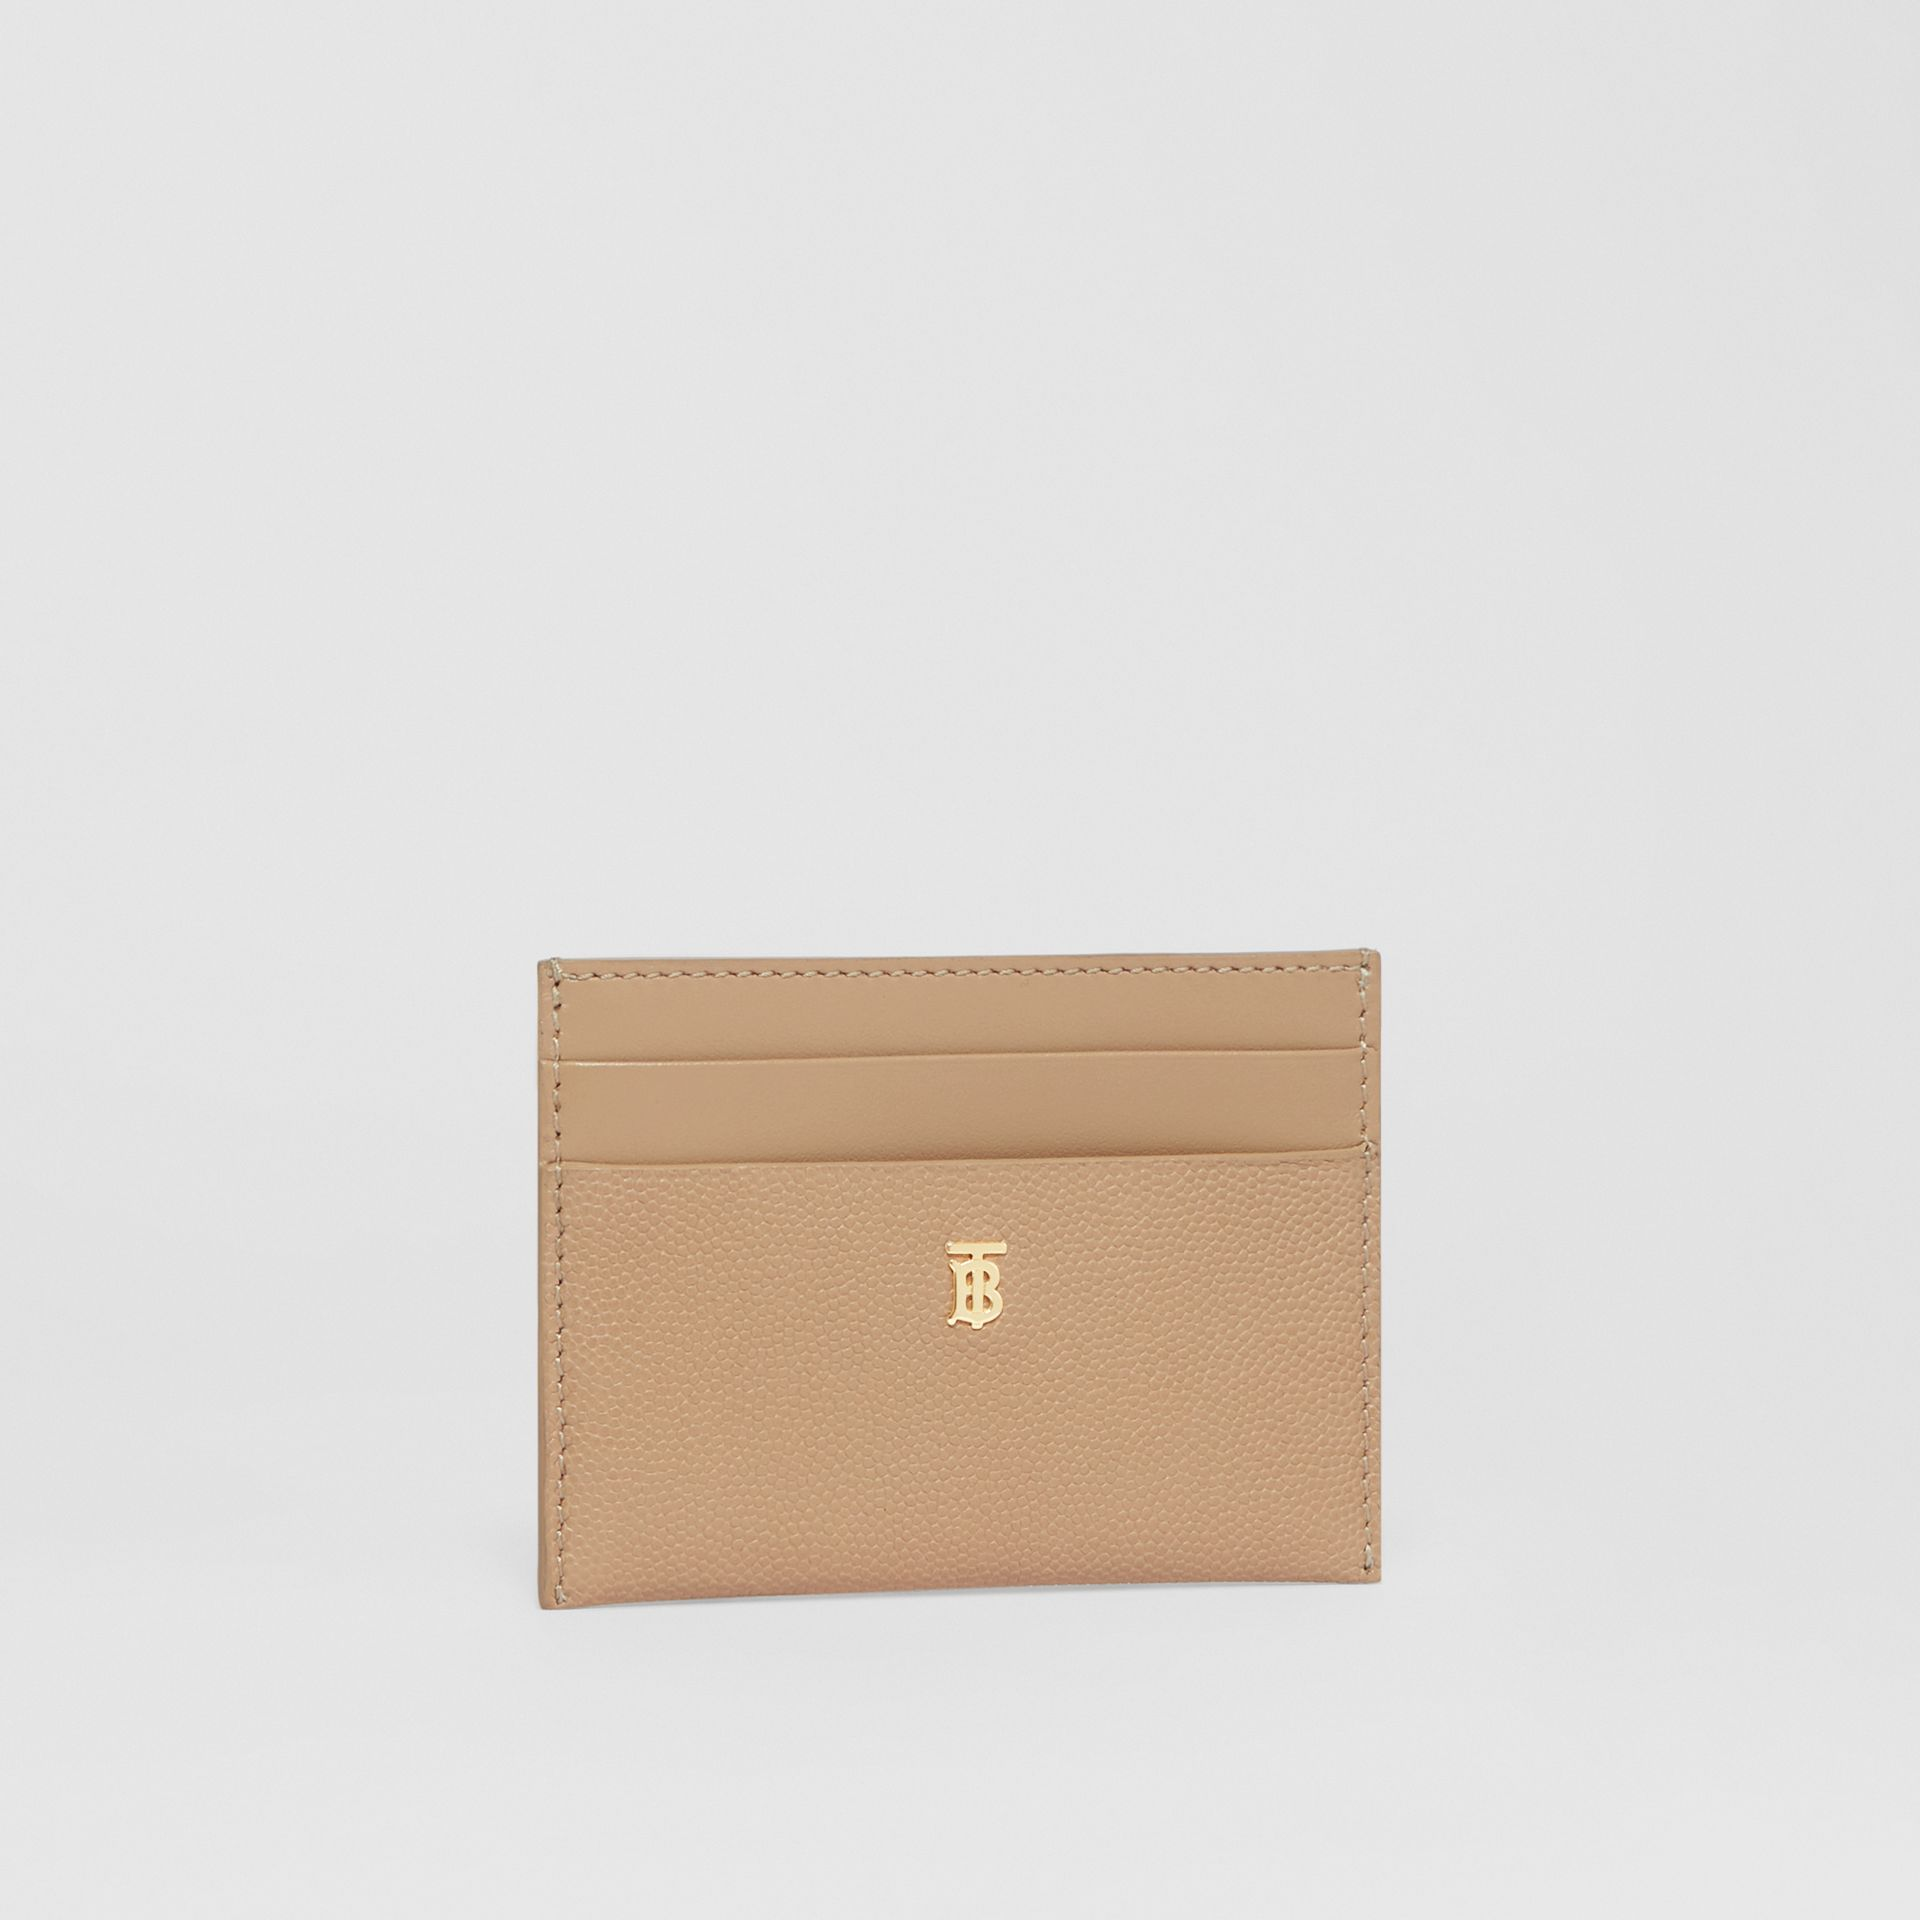 Monogram Motif Leather Card Case in Archive Beige - Women | Burberry United Kingdom - gallery image 2